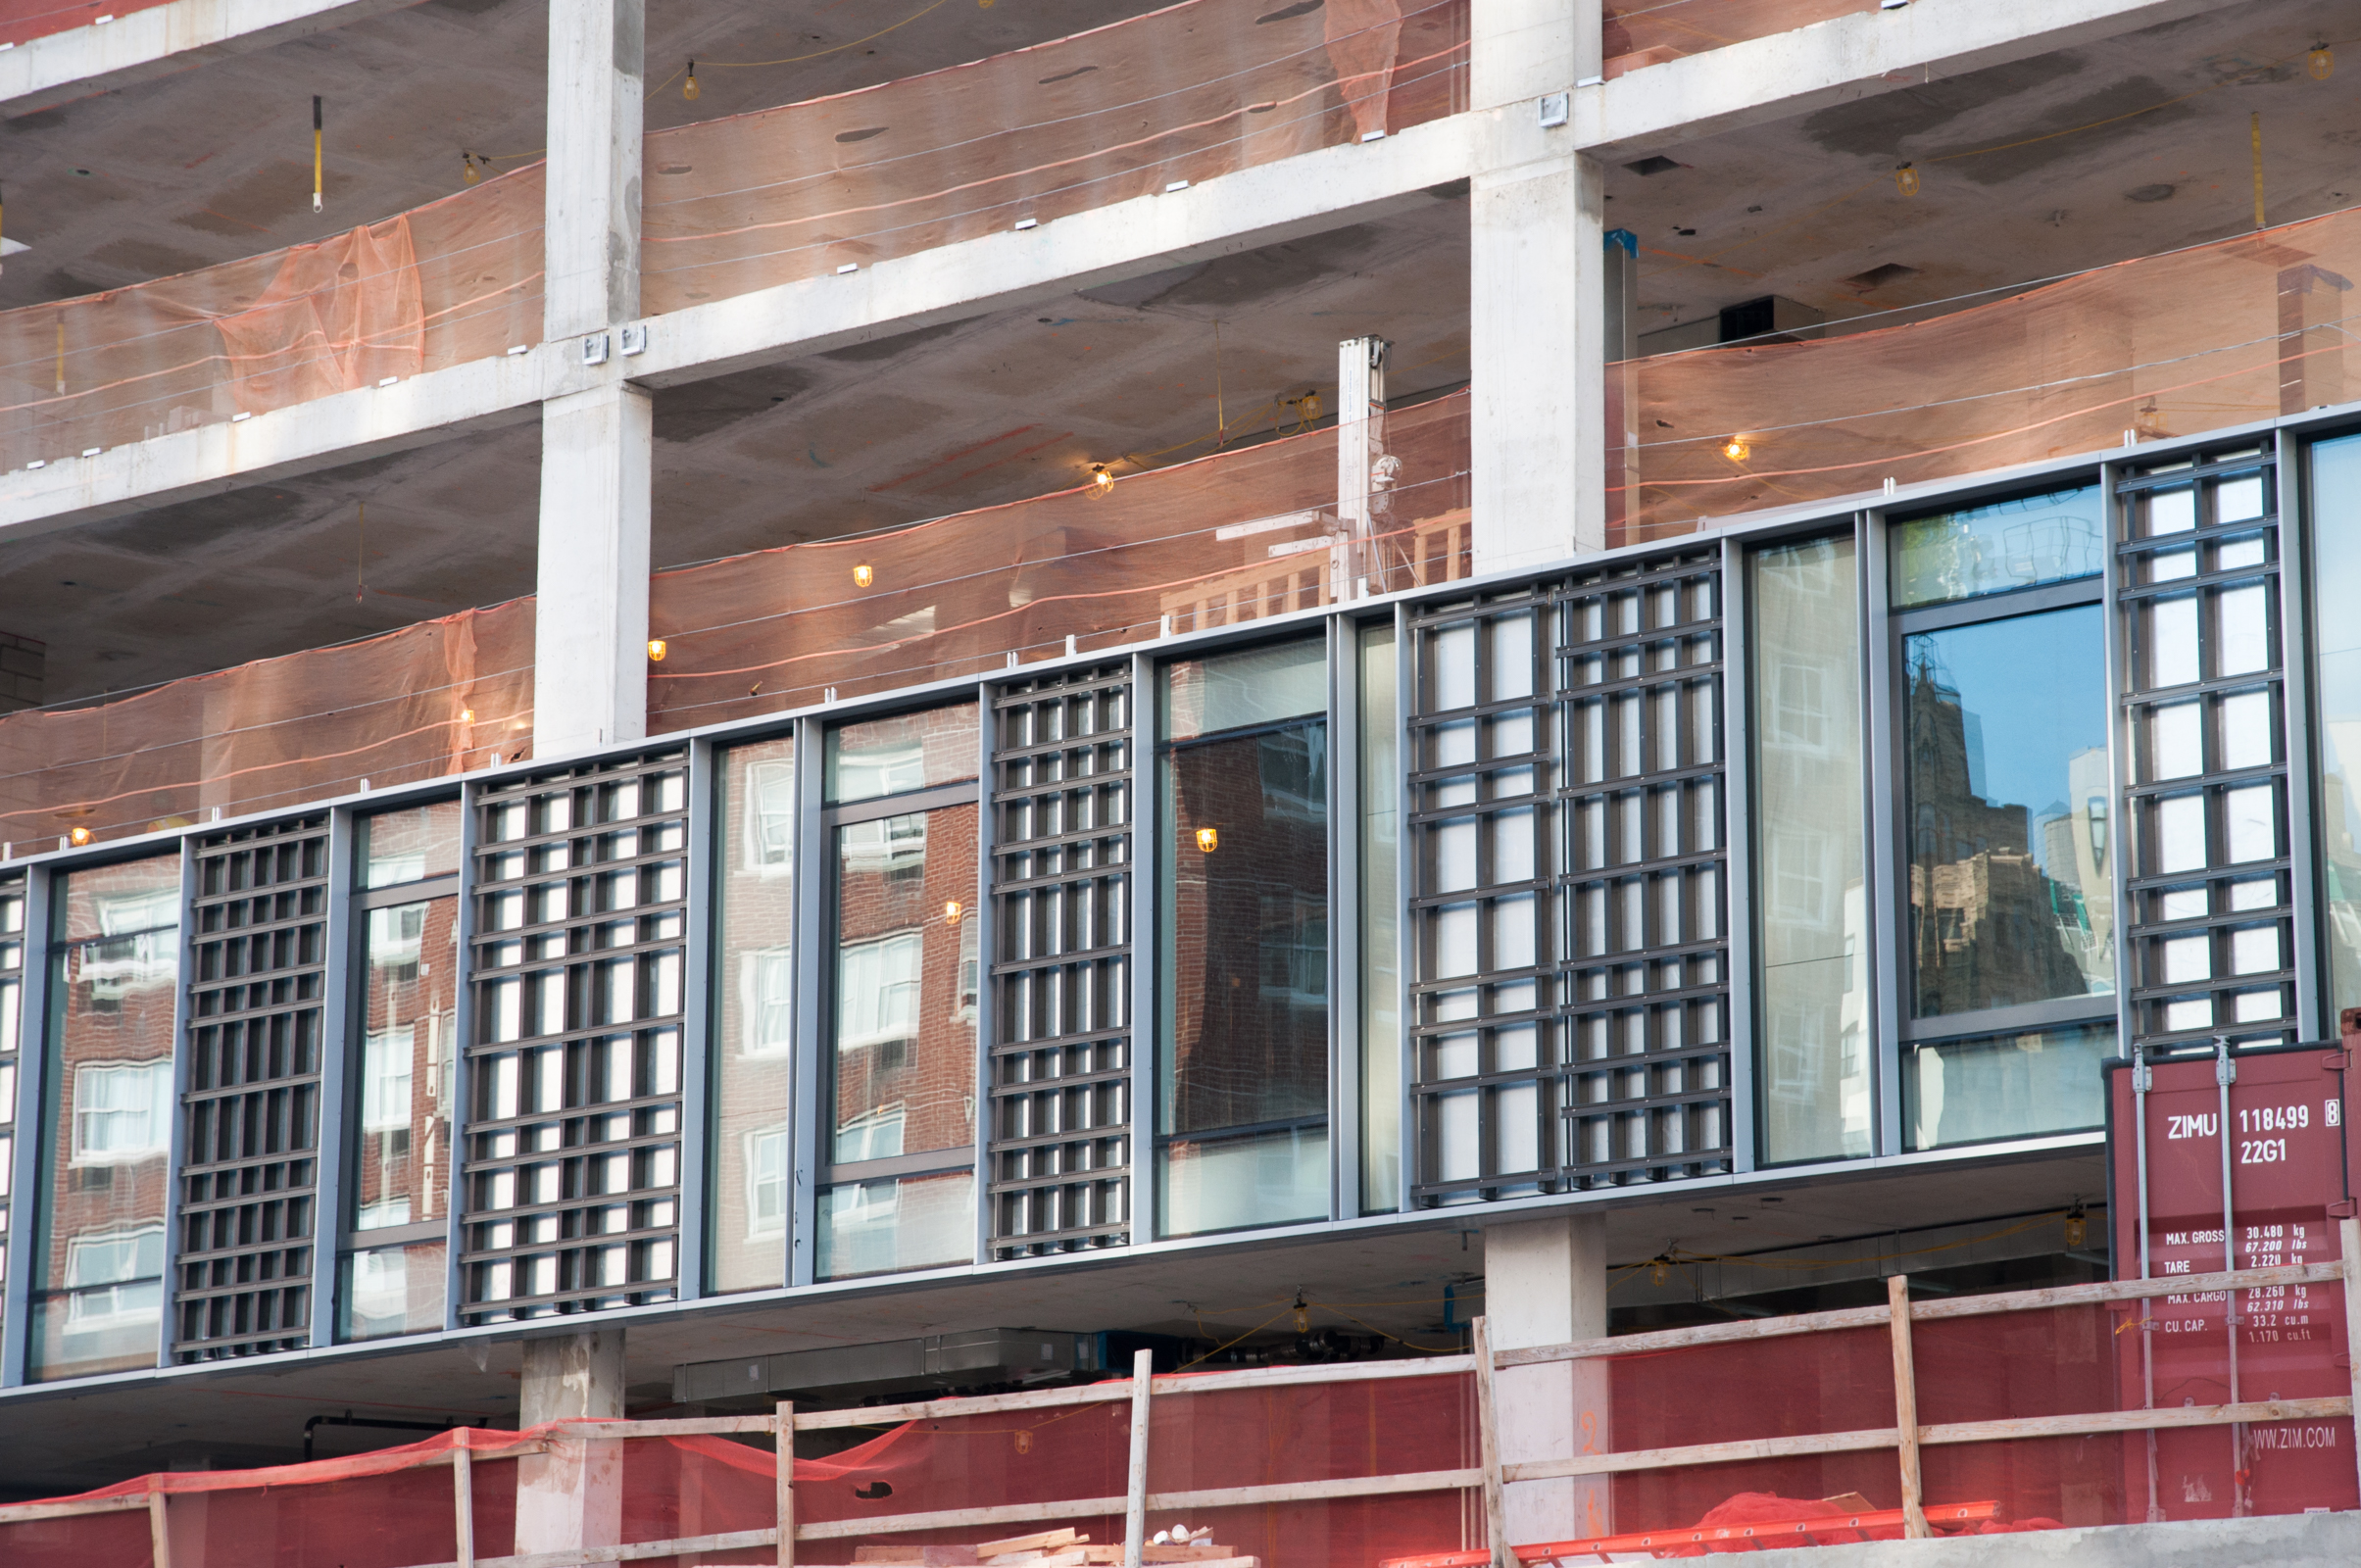 Detail of the curtain wall units with the griddedlimestone panel supports visible.